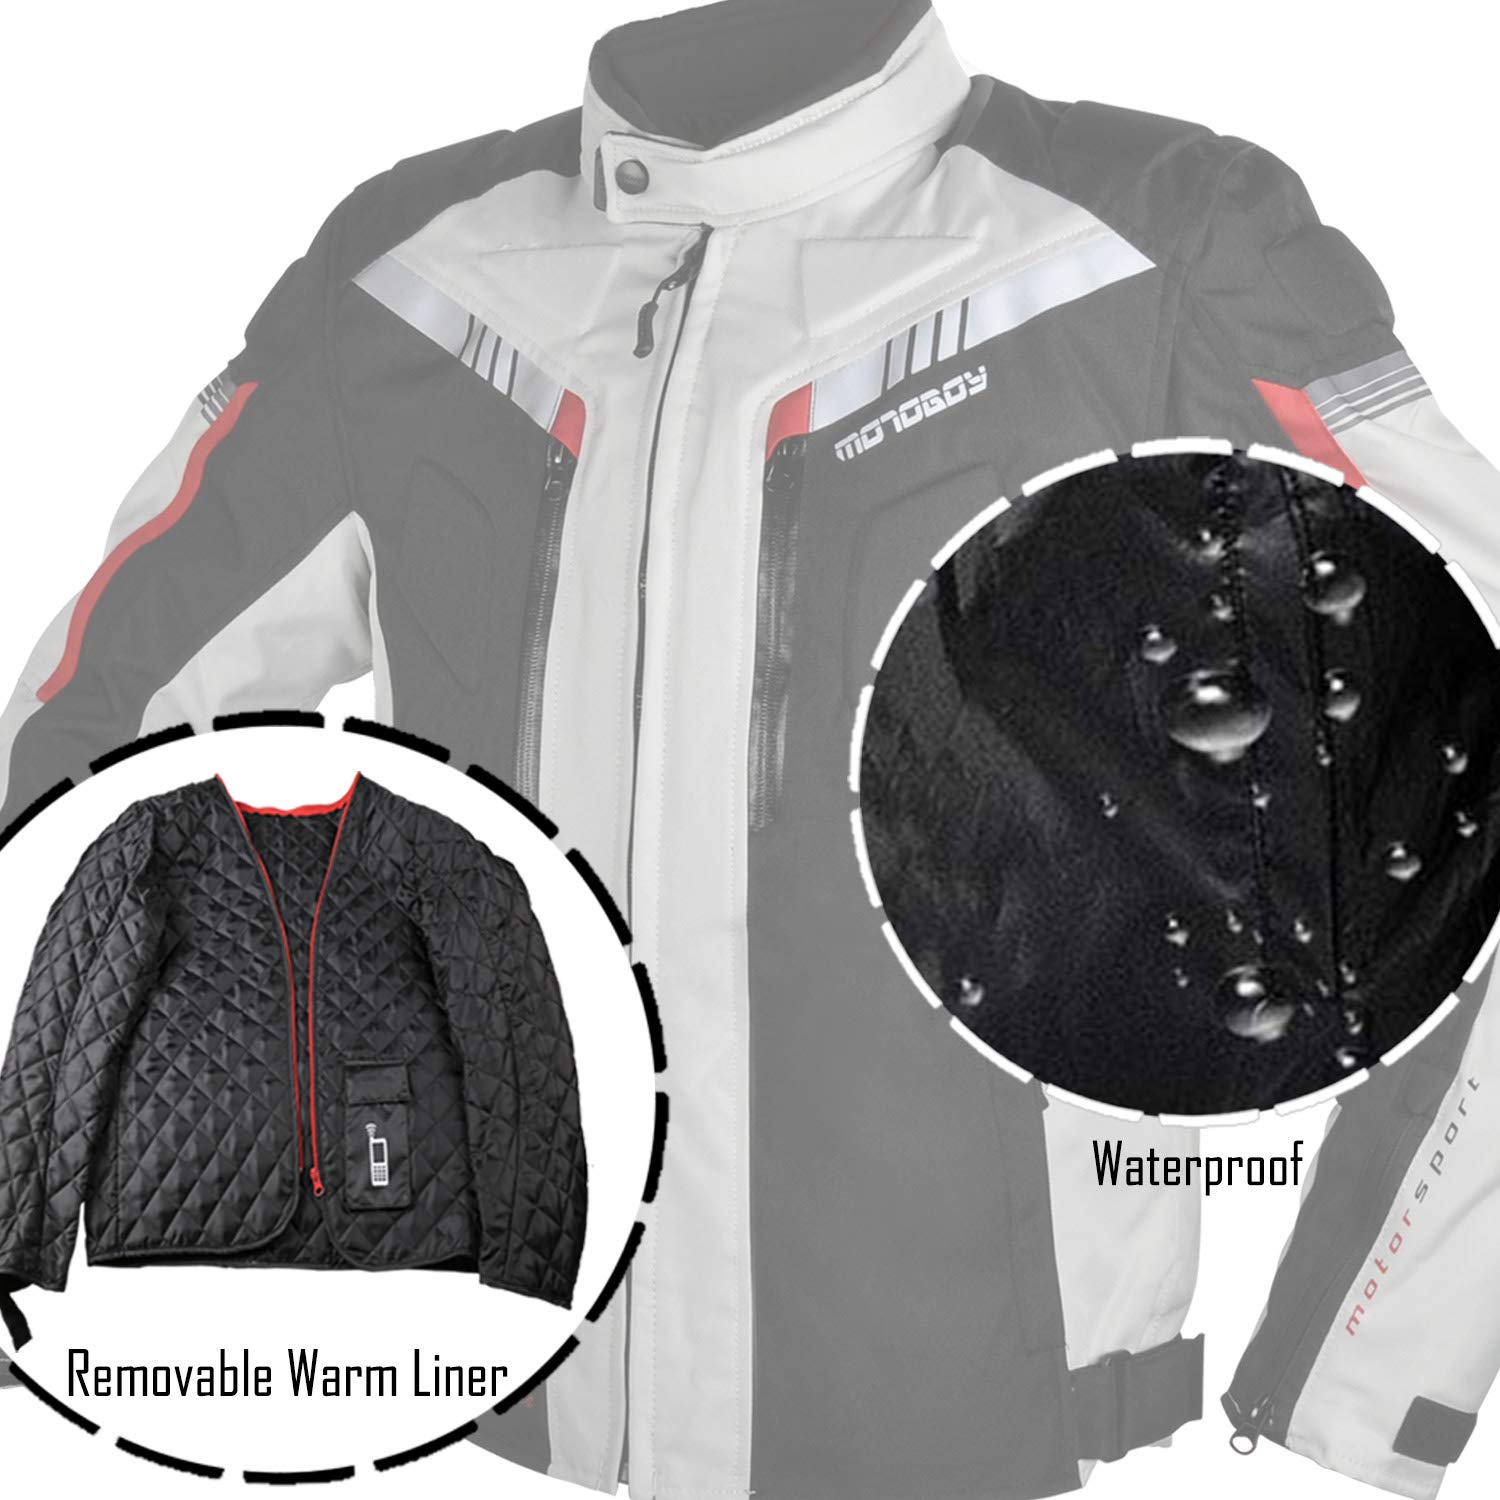 All Seasons Waterproof Motorcycle Riding Jacket,Removable CE Armored Hi-Vis Reflective Thermal Motorbike Jacket for Men L, Black